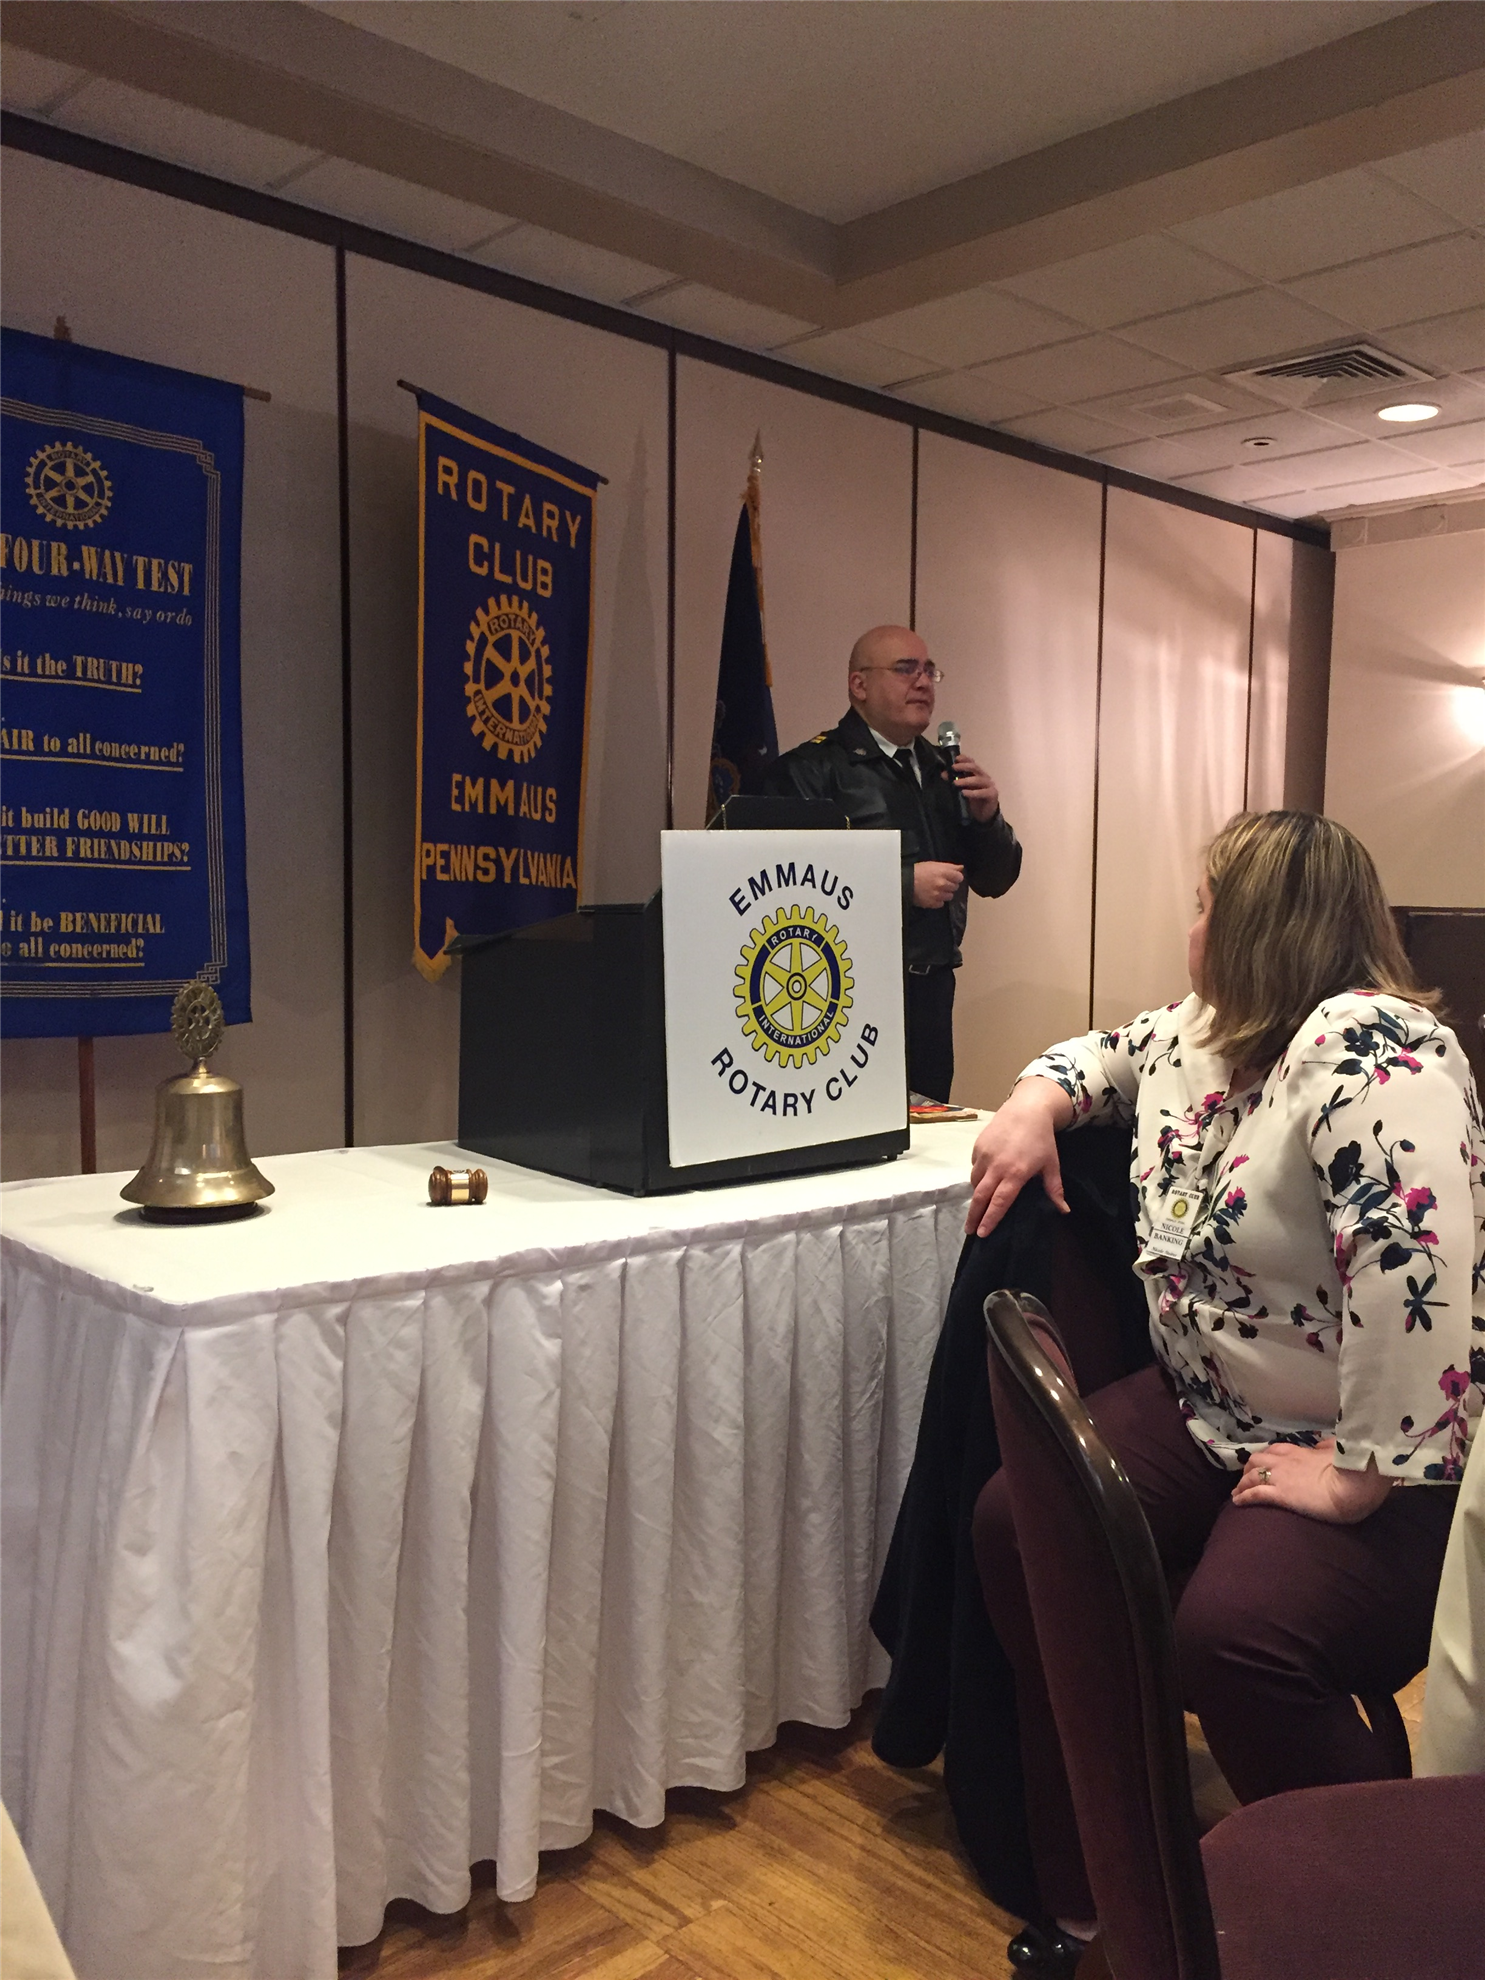 Chief Pace met Emmaus Rotary last week and presented his experience as  being chosen out of thousands of applicants to serve as a Rotary Peace  Scholar. bf6ba52511f